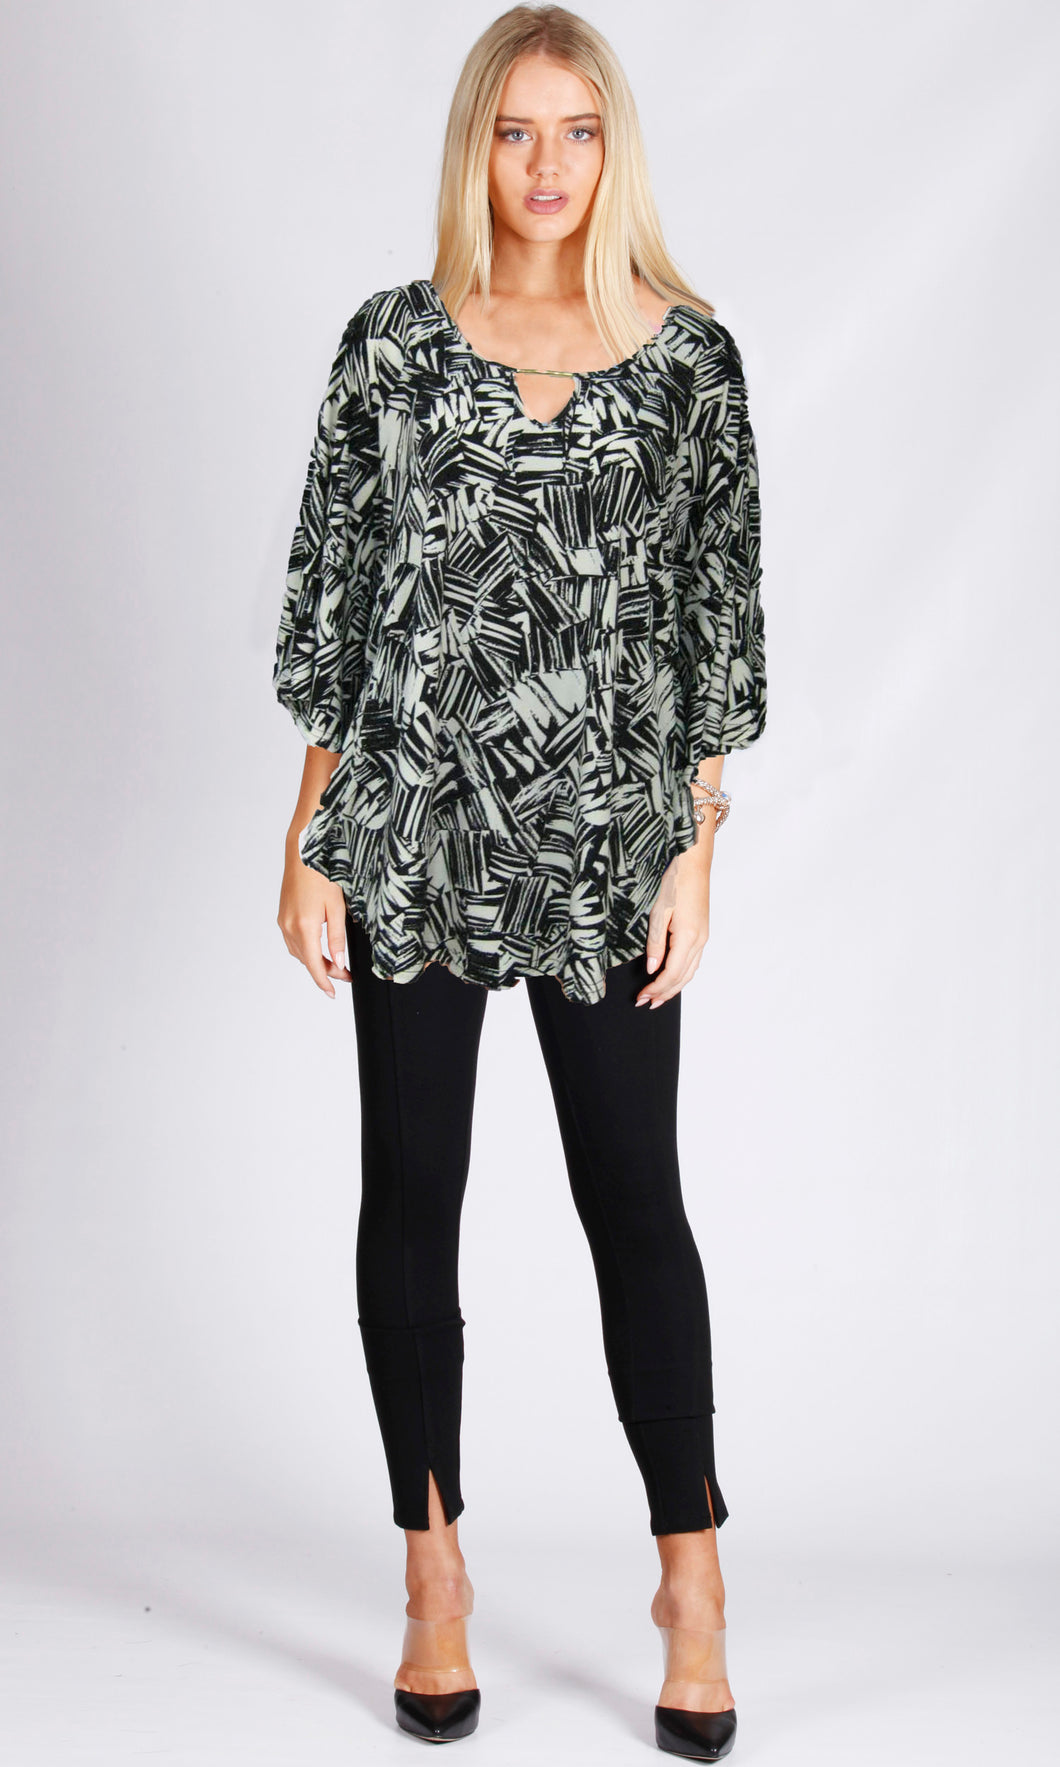 BT100214-23NC Graphic Print Top (Pack)